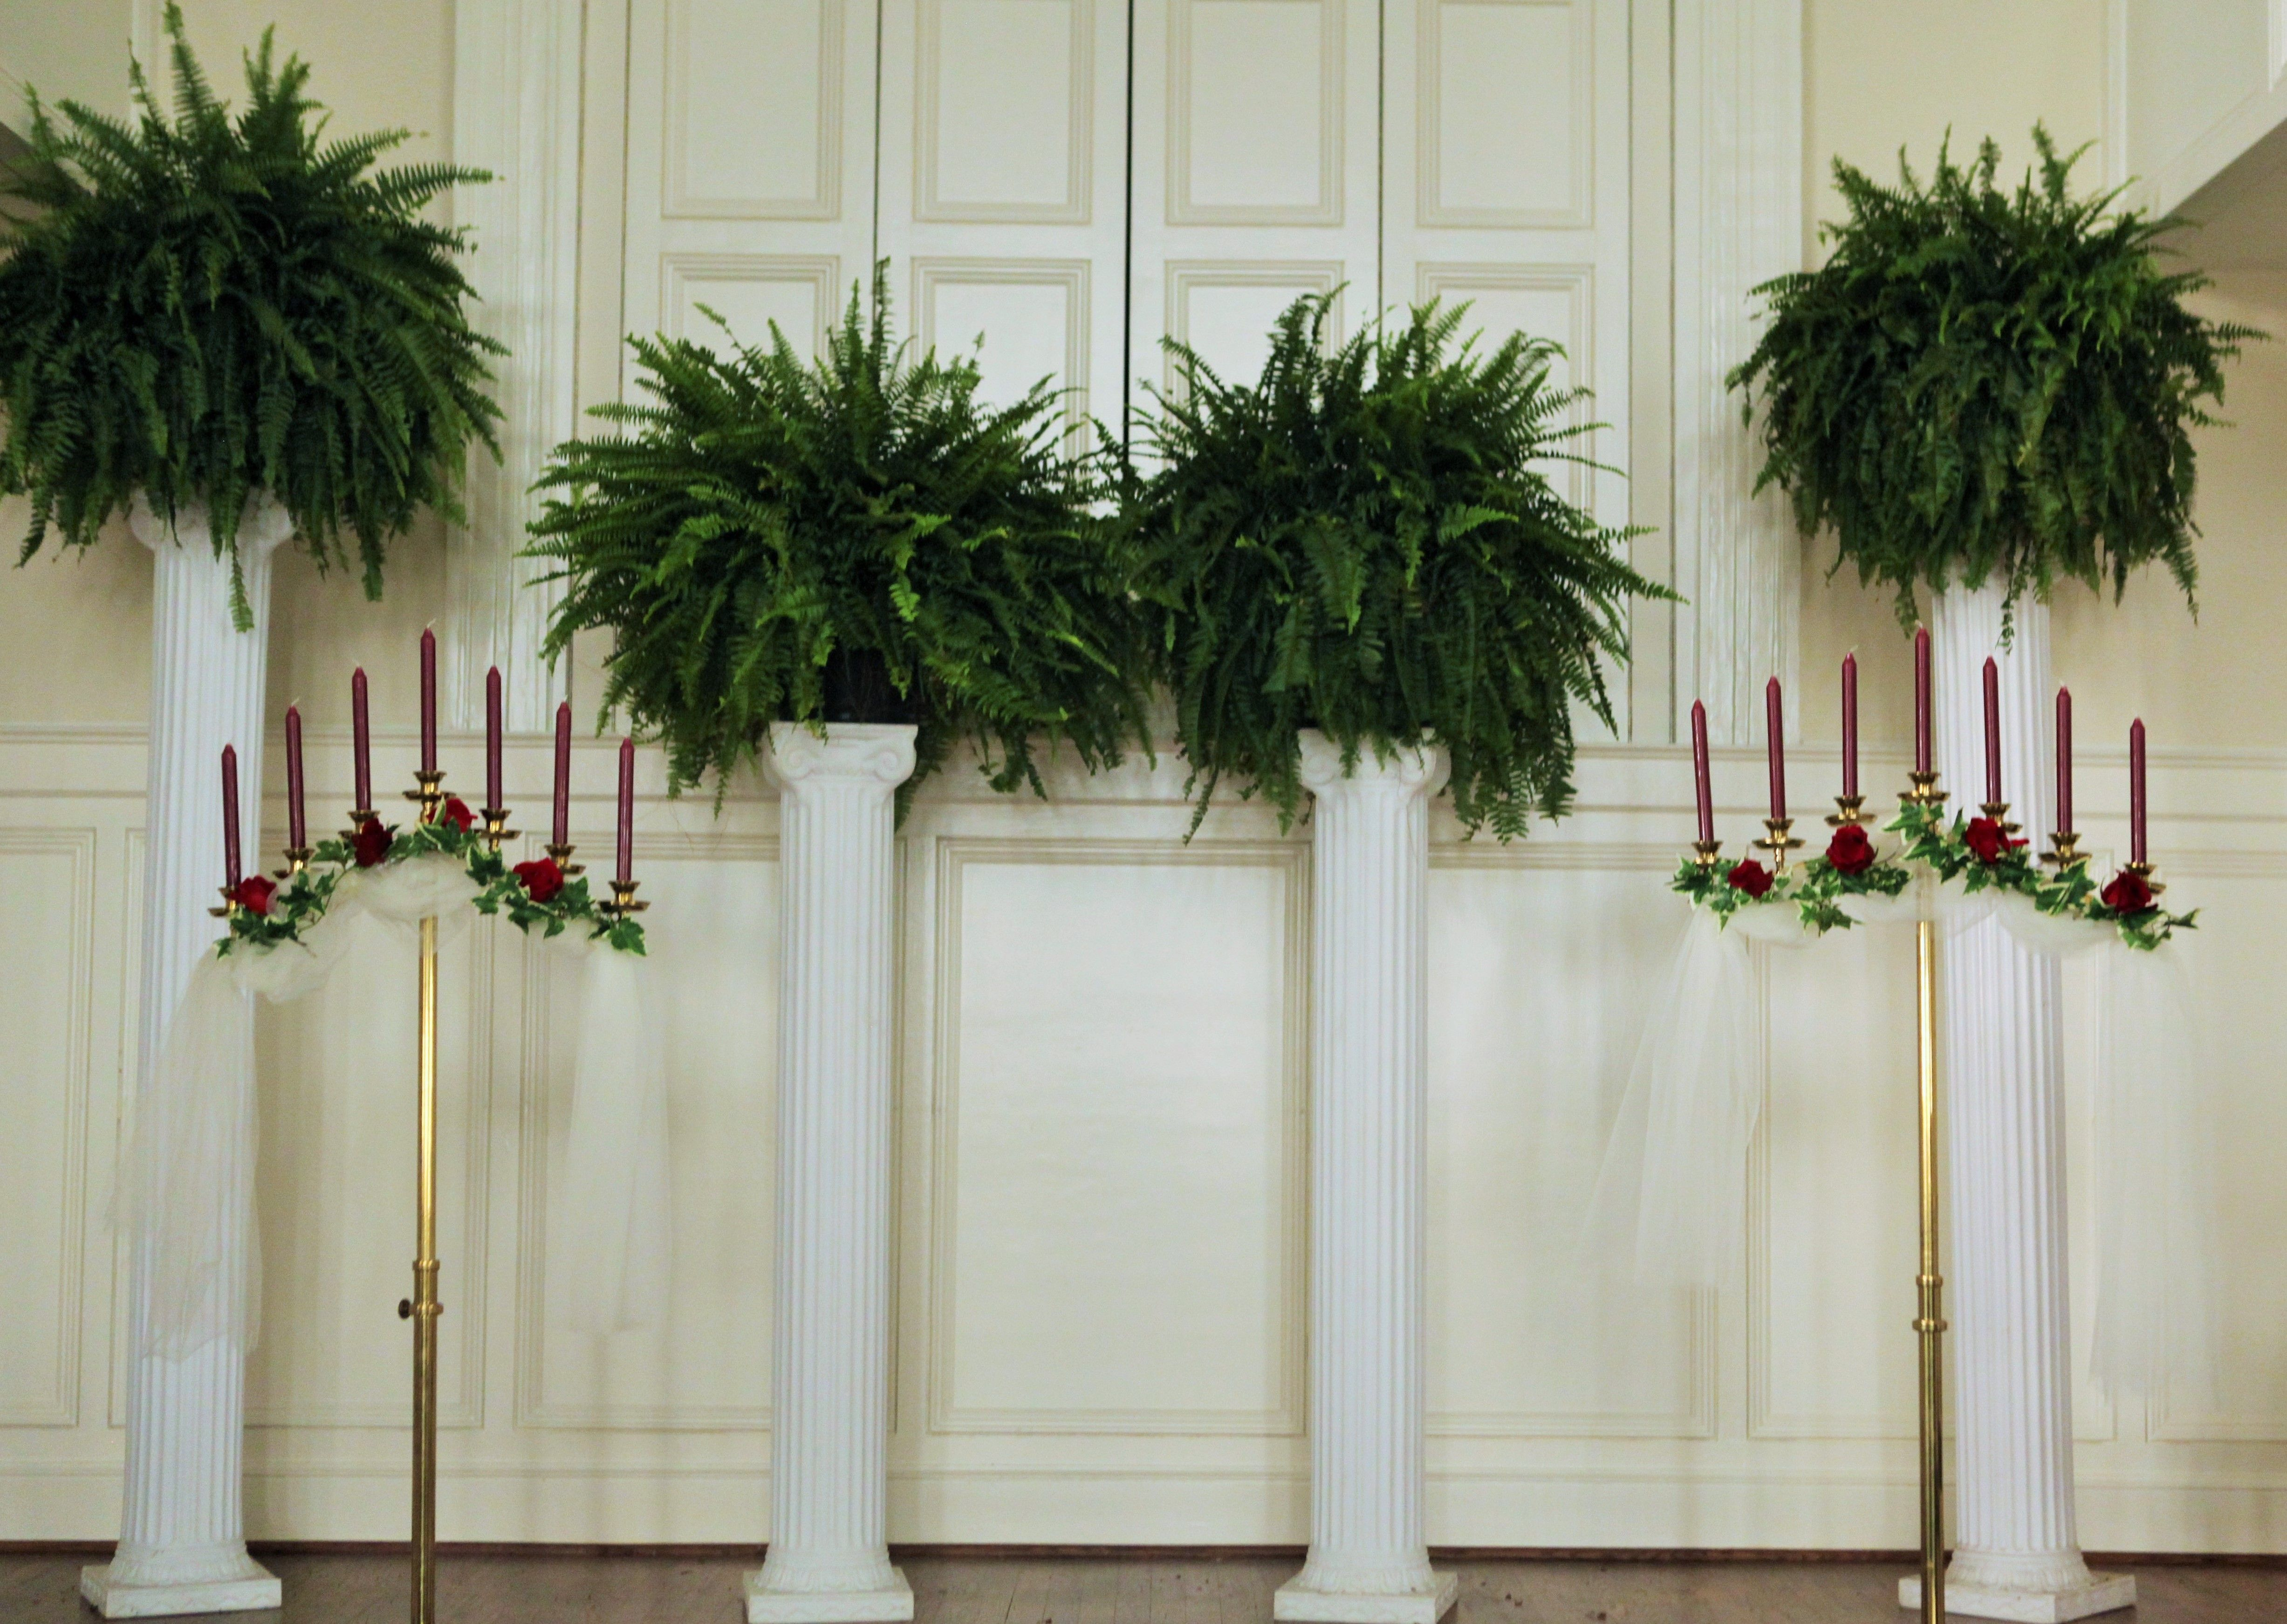 Wedding Decor Columns With Ferns Candle Holders With Burgundy